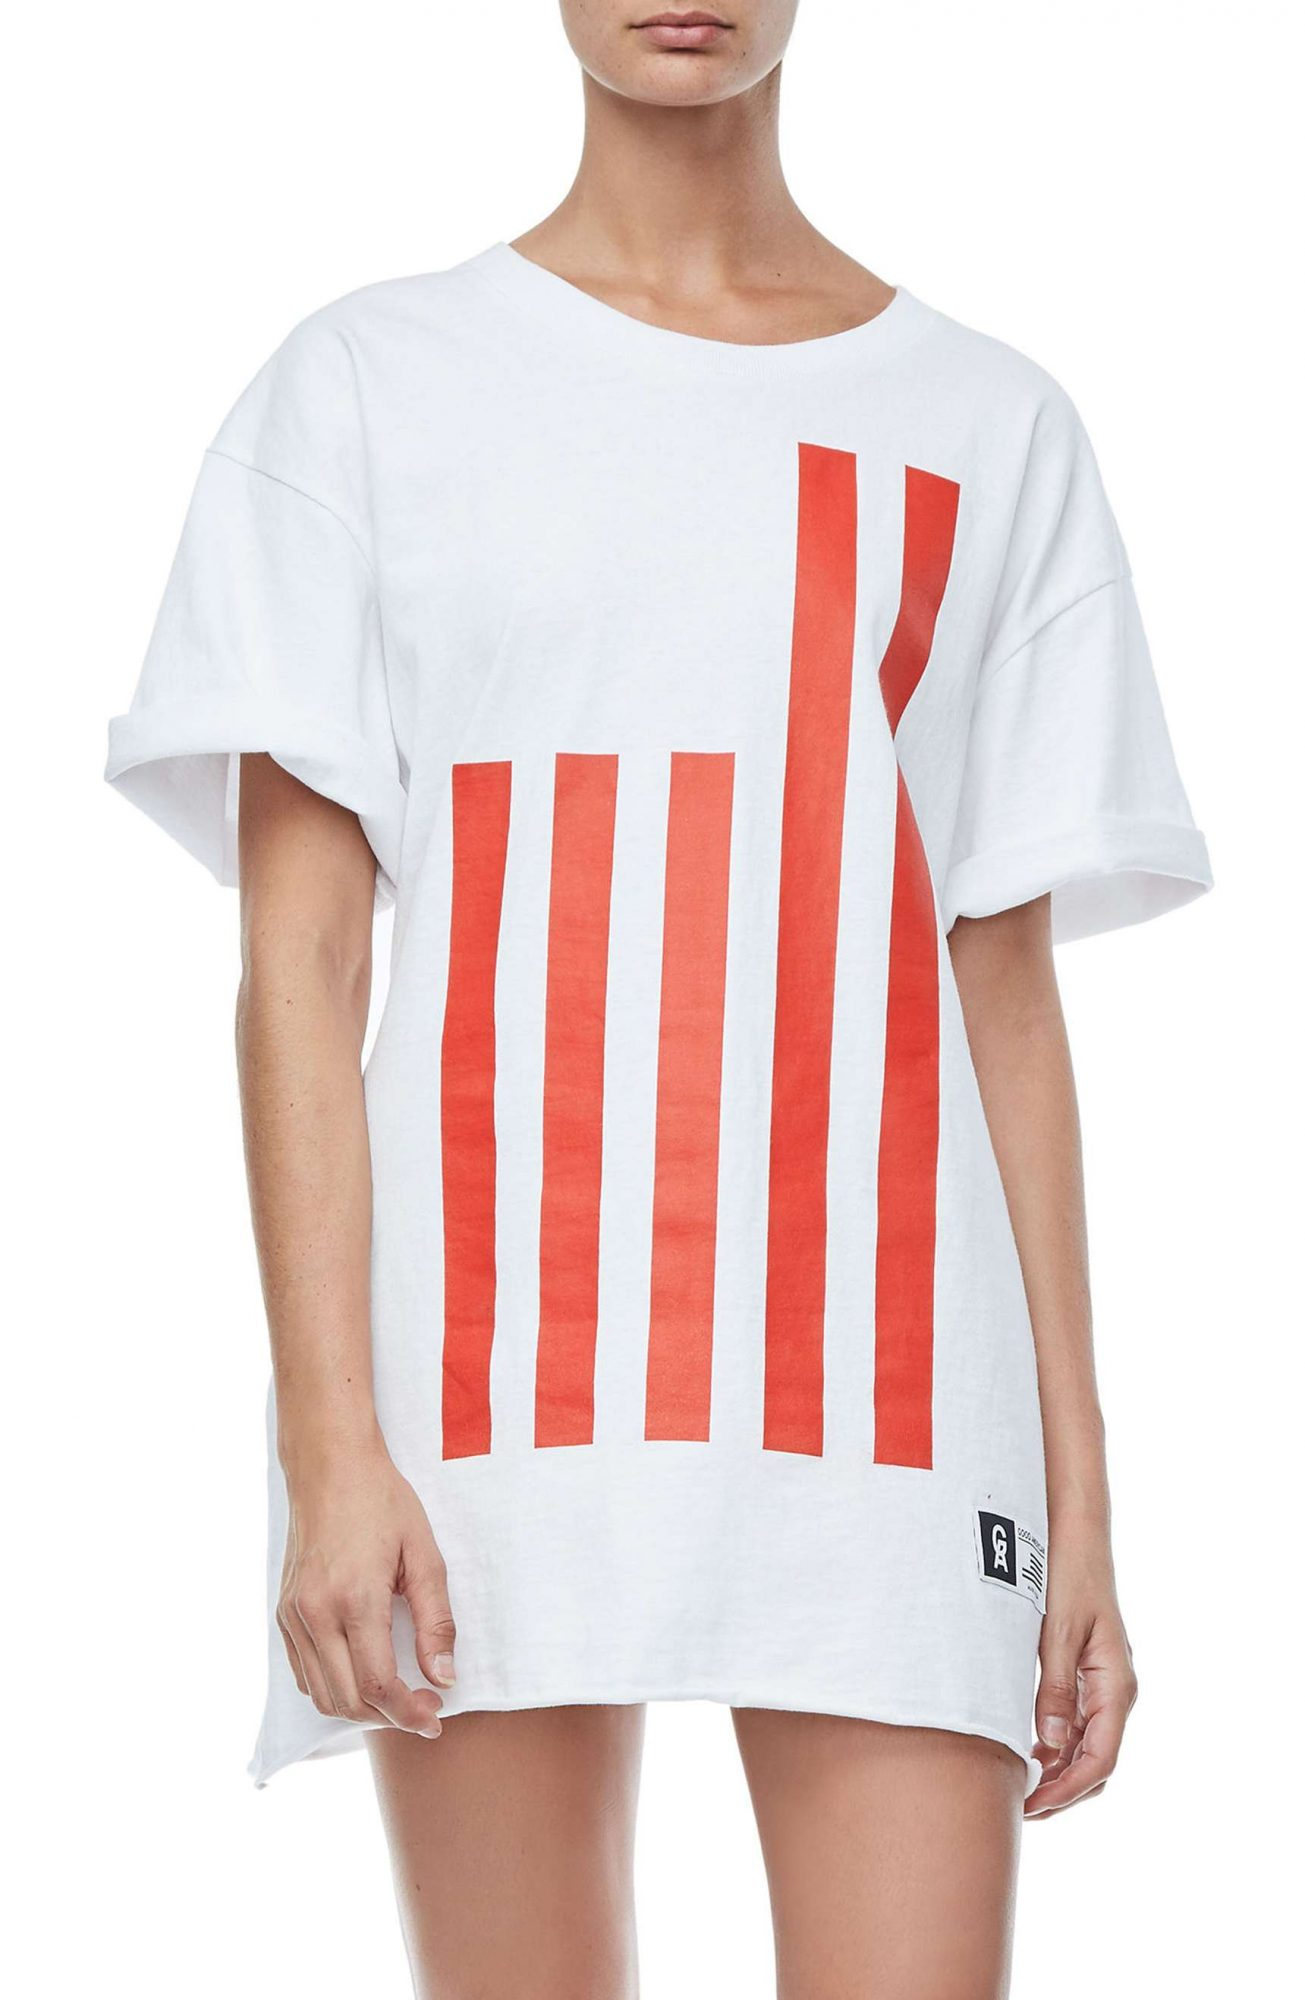 Goodies Graphic Oversize Tee